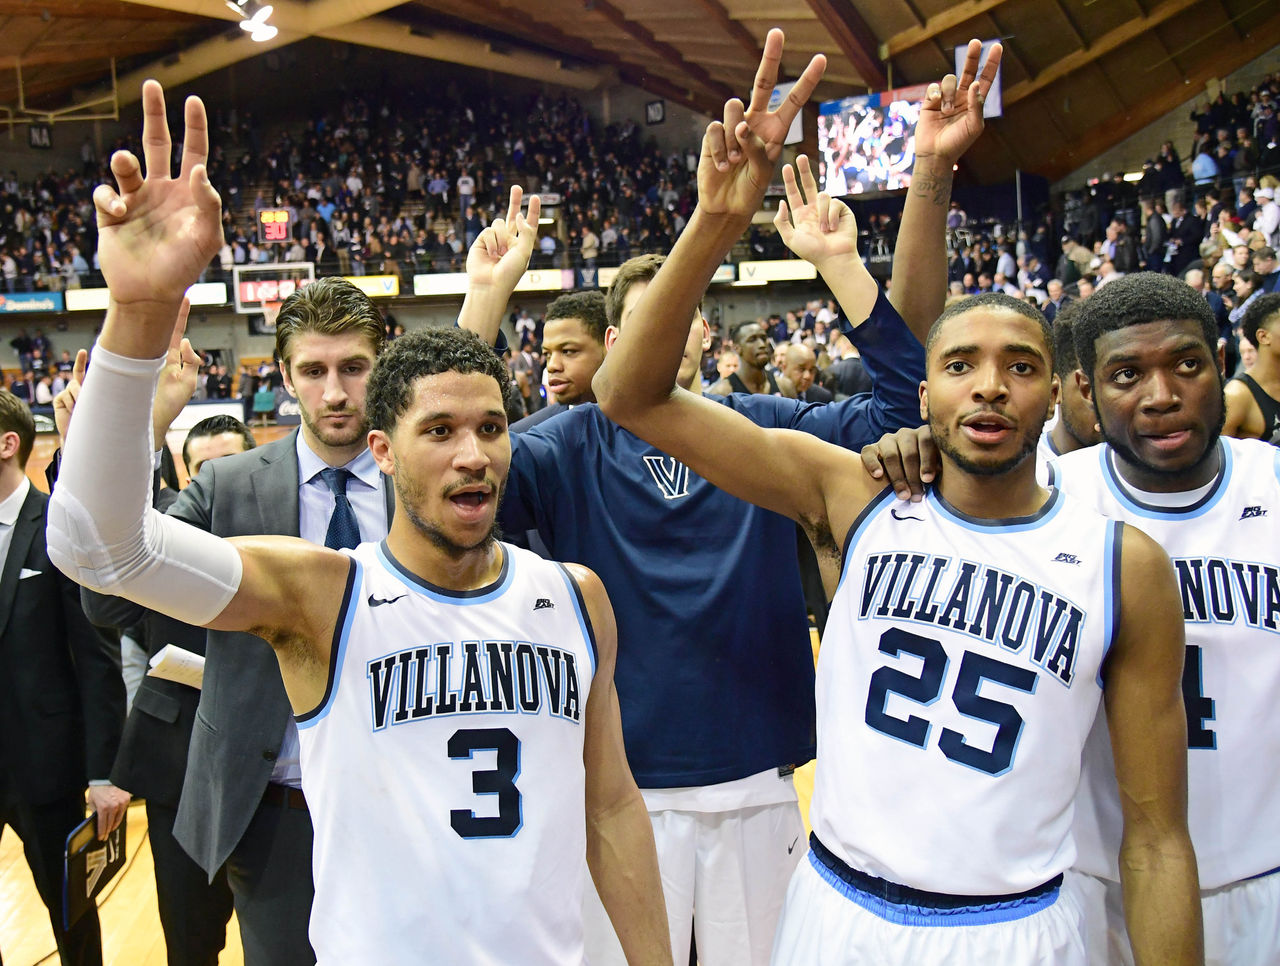 Cropped_2017-02-08t022140z_97799258_nocid_rtrmadp_3_ncaa-basketball-georgetown-at-villanova